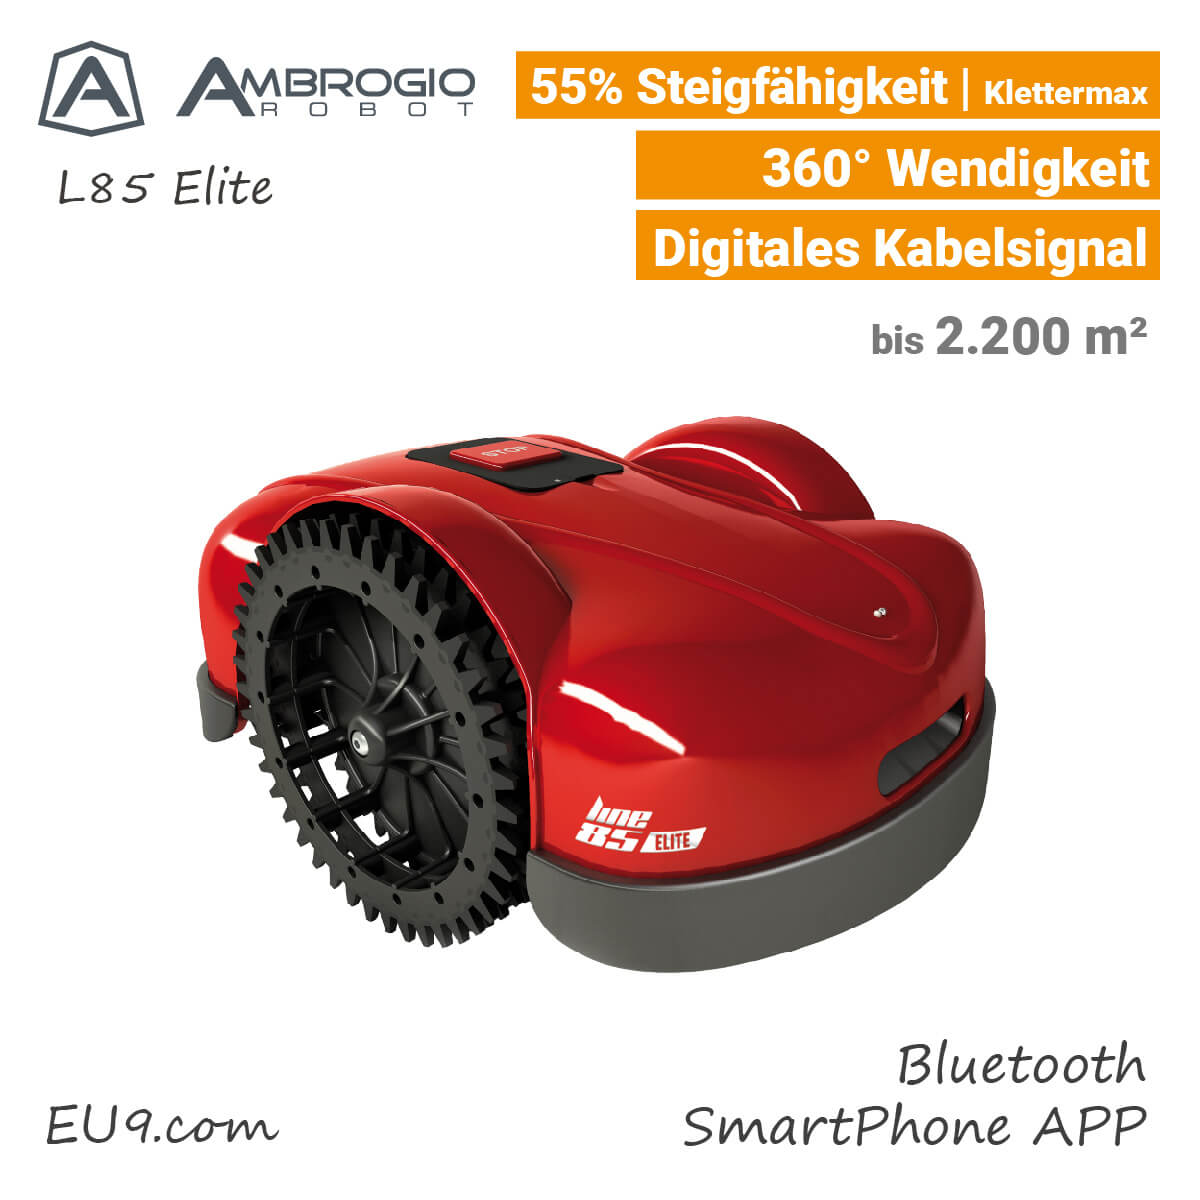 ambrogio l85 elite rasenroboter klettermax jetzt g nstig bei eu9 kaufen. Black Bedroom Furniture Sets. Home Design Ideas